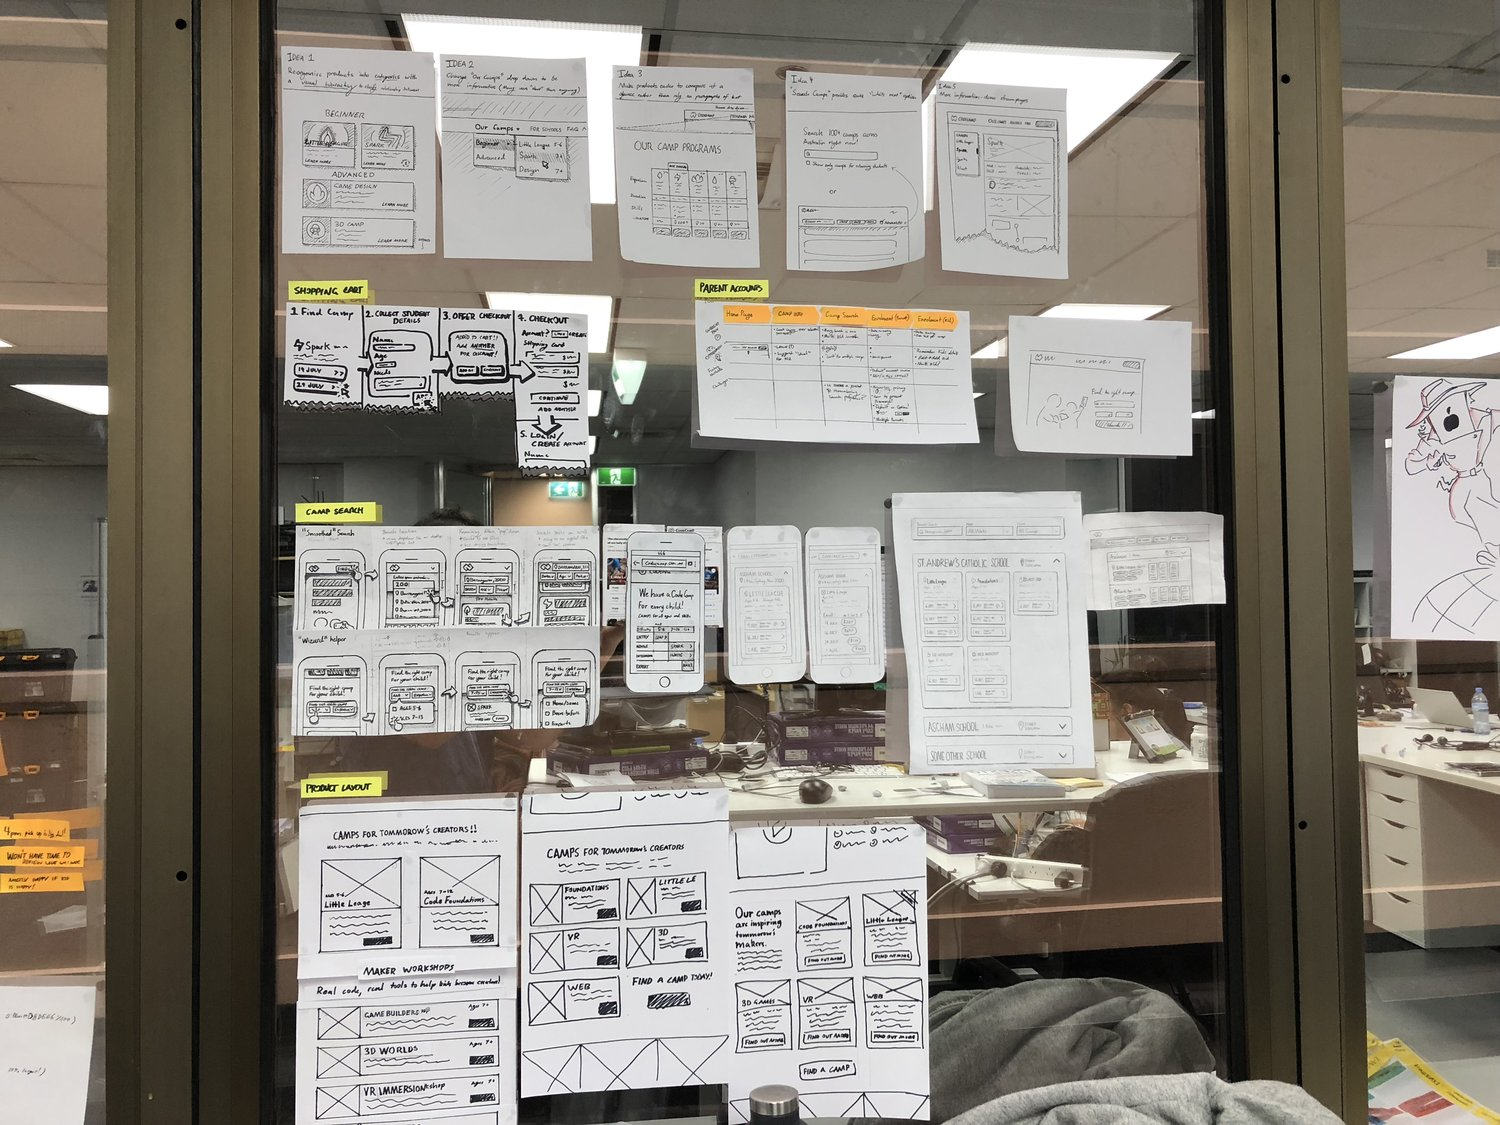 I preceded each round of development with a series of detailed paper prototypes and user flows we could use internally to weigh ideas against each other.